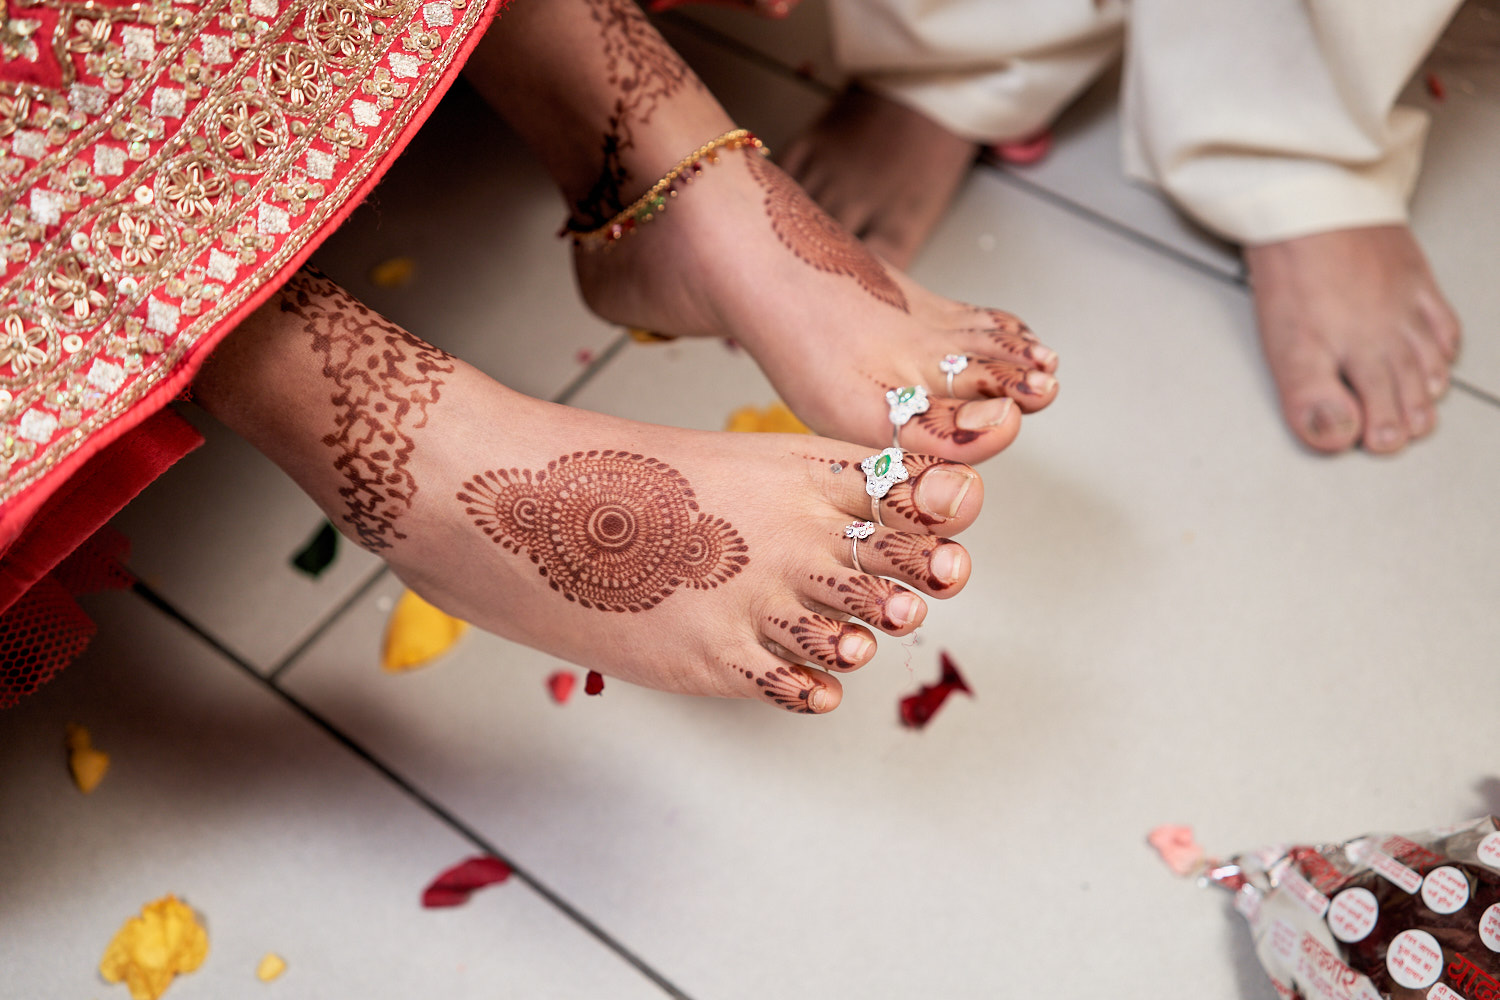 In some cultures, the uncle of the bride put the toe ring , a symbol of being married.